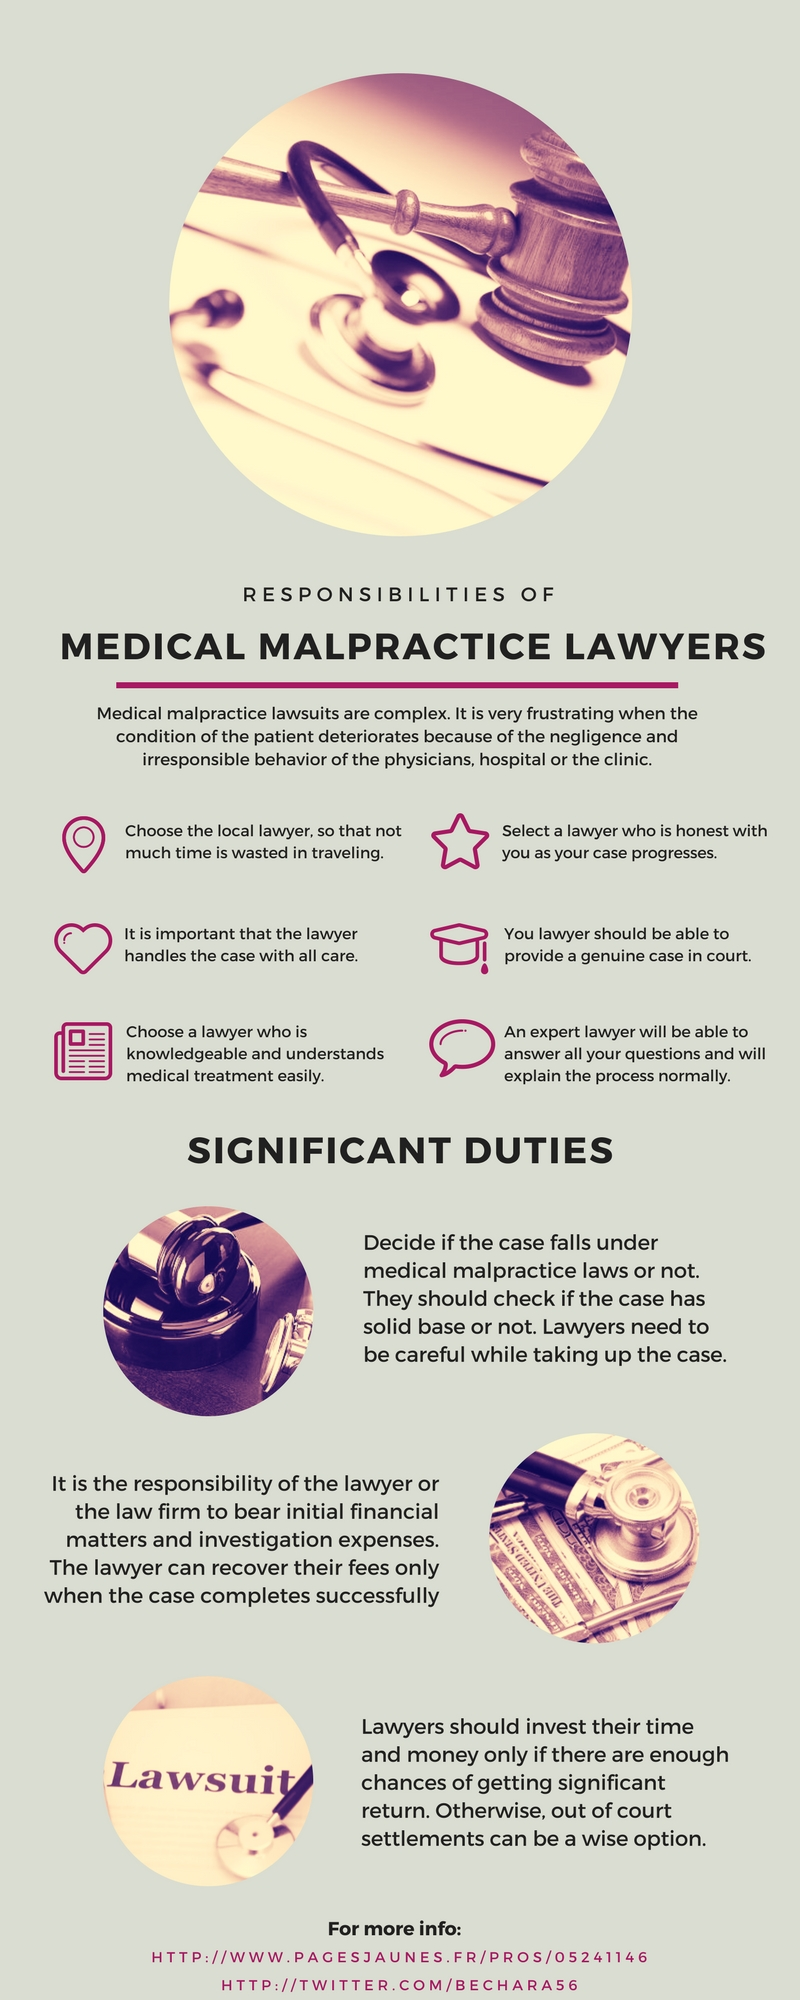 Most recent image: Responsibilities of Medical Malpractice Lawyers